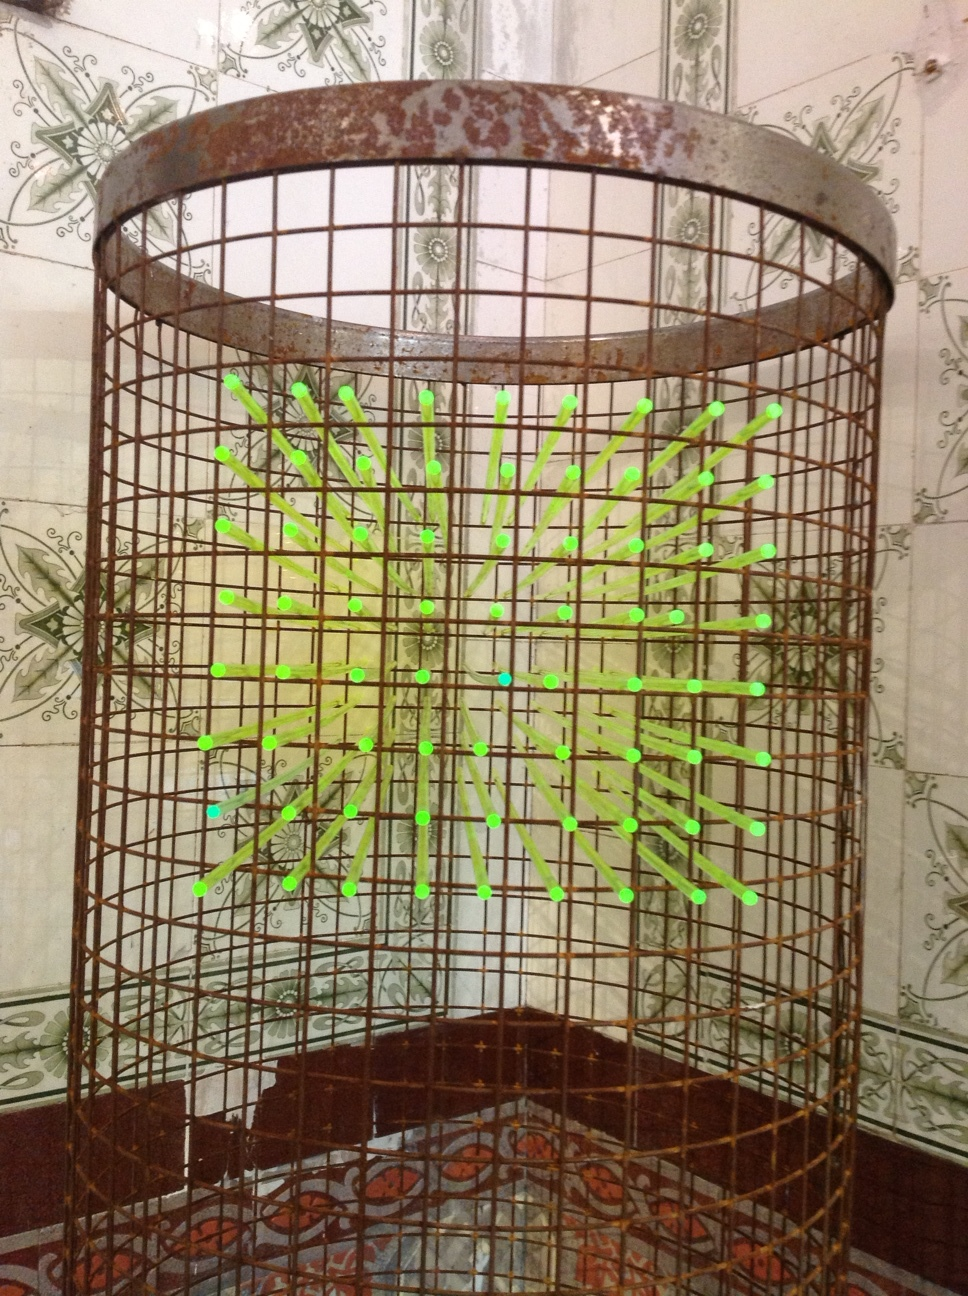 Neon- Steel Mesh and Light Transmitting Fluorescent Perspex Rods. June 2013